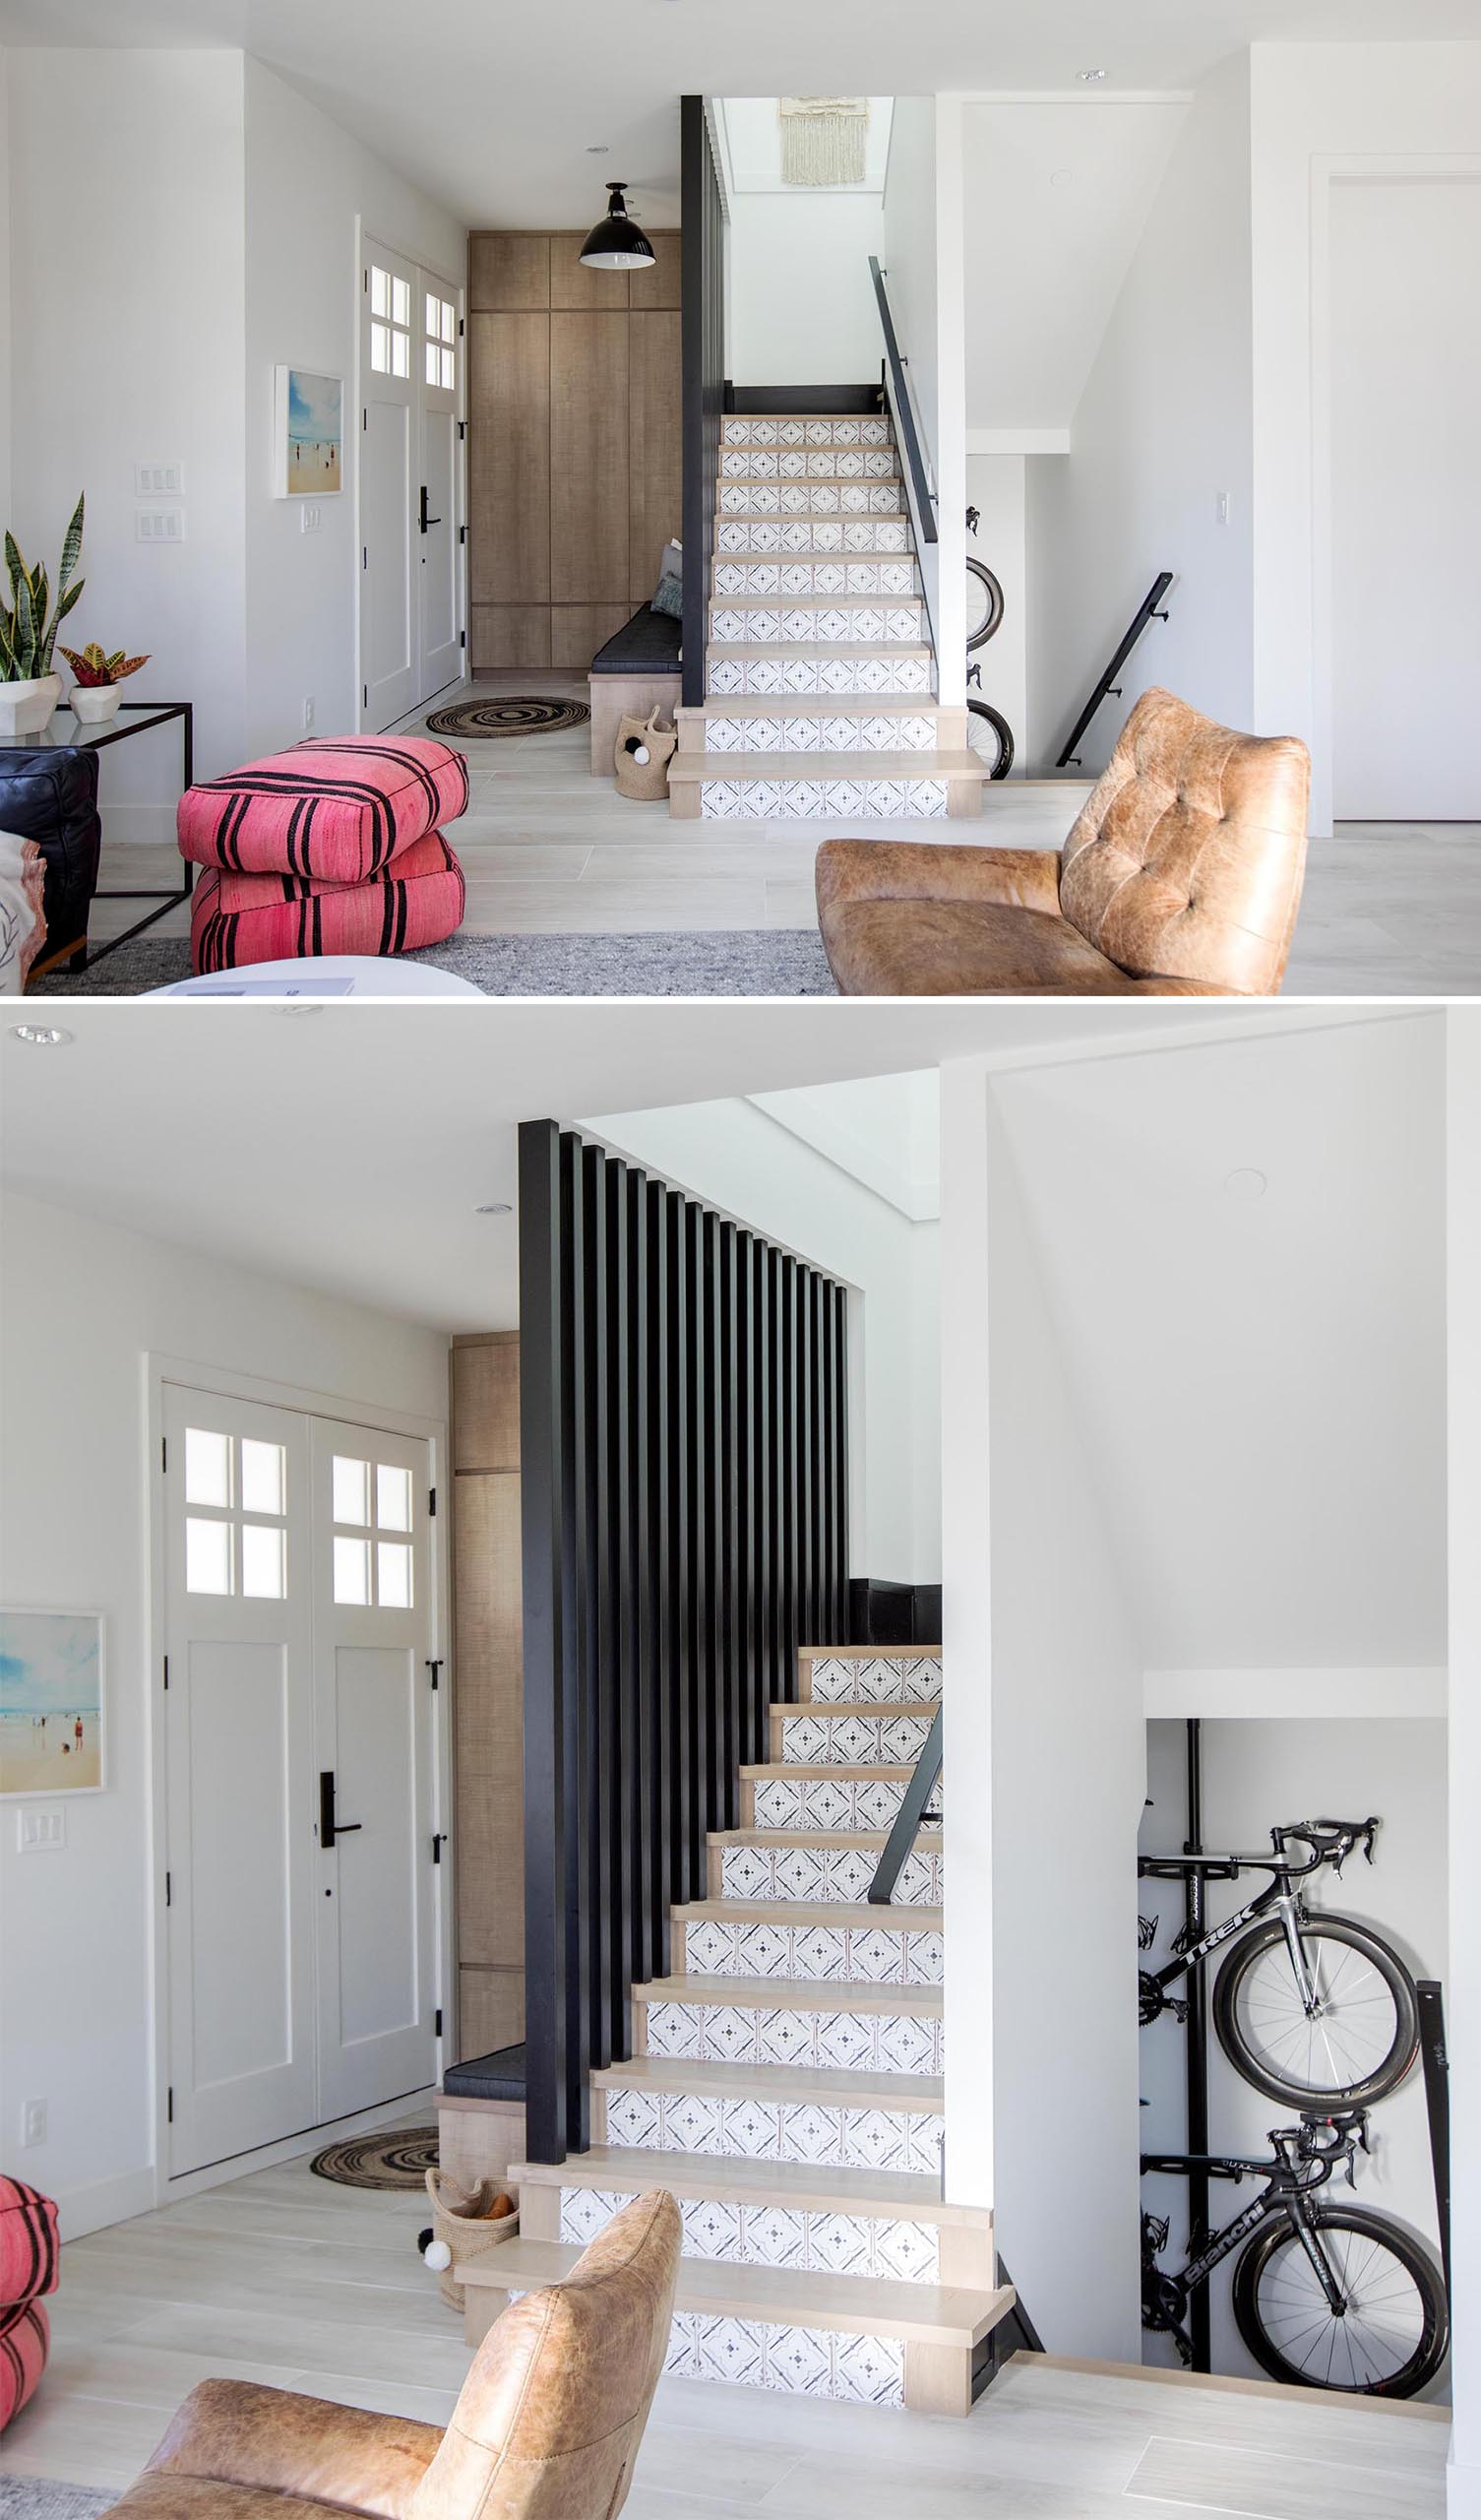 This modern home has a a small entryway furnished with a wood bench and a black upholstered cushion.